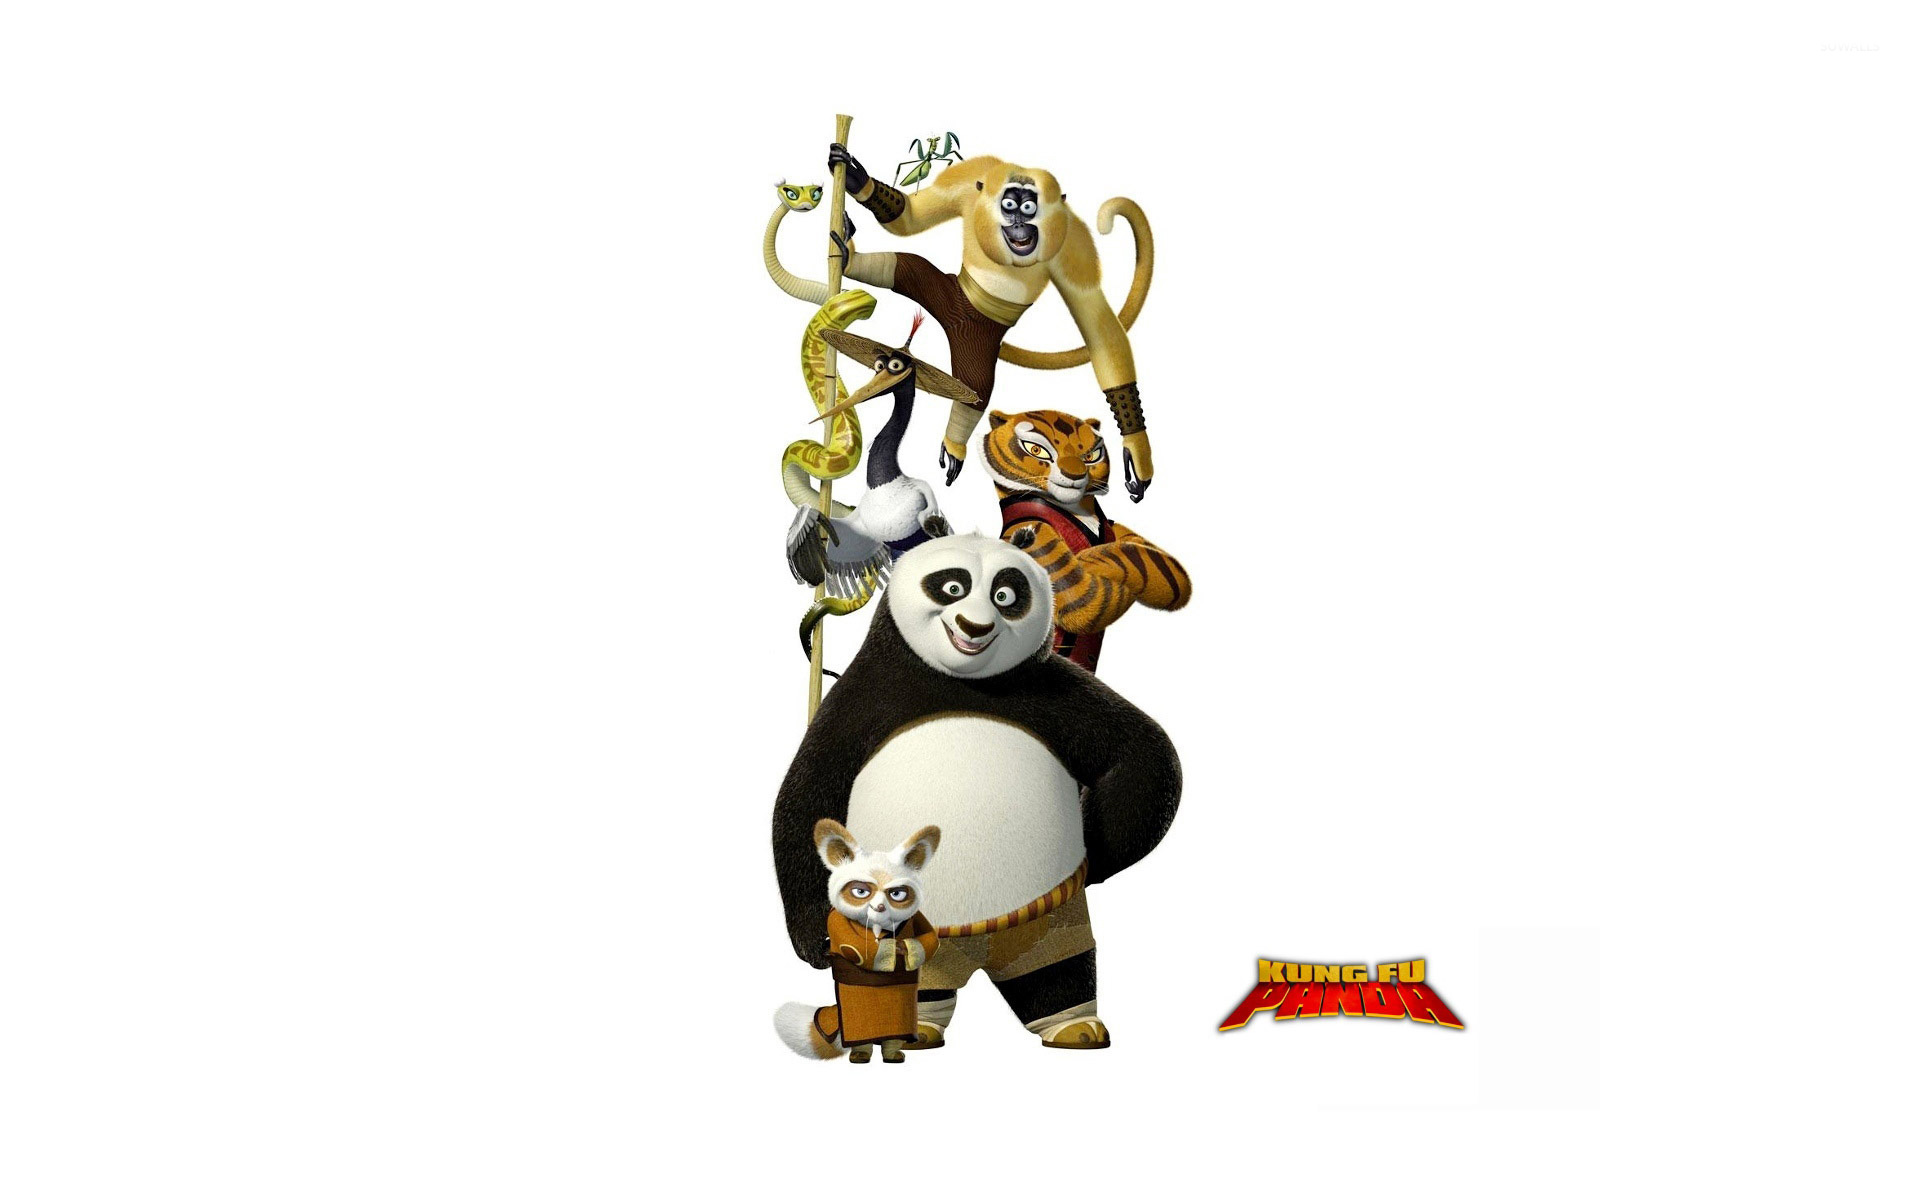 Kung Fu Panda Wallpapers With Quotes Kung Fu Panda 4 Wallpaper Cartoon Wallpapers 4896